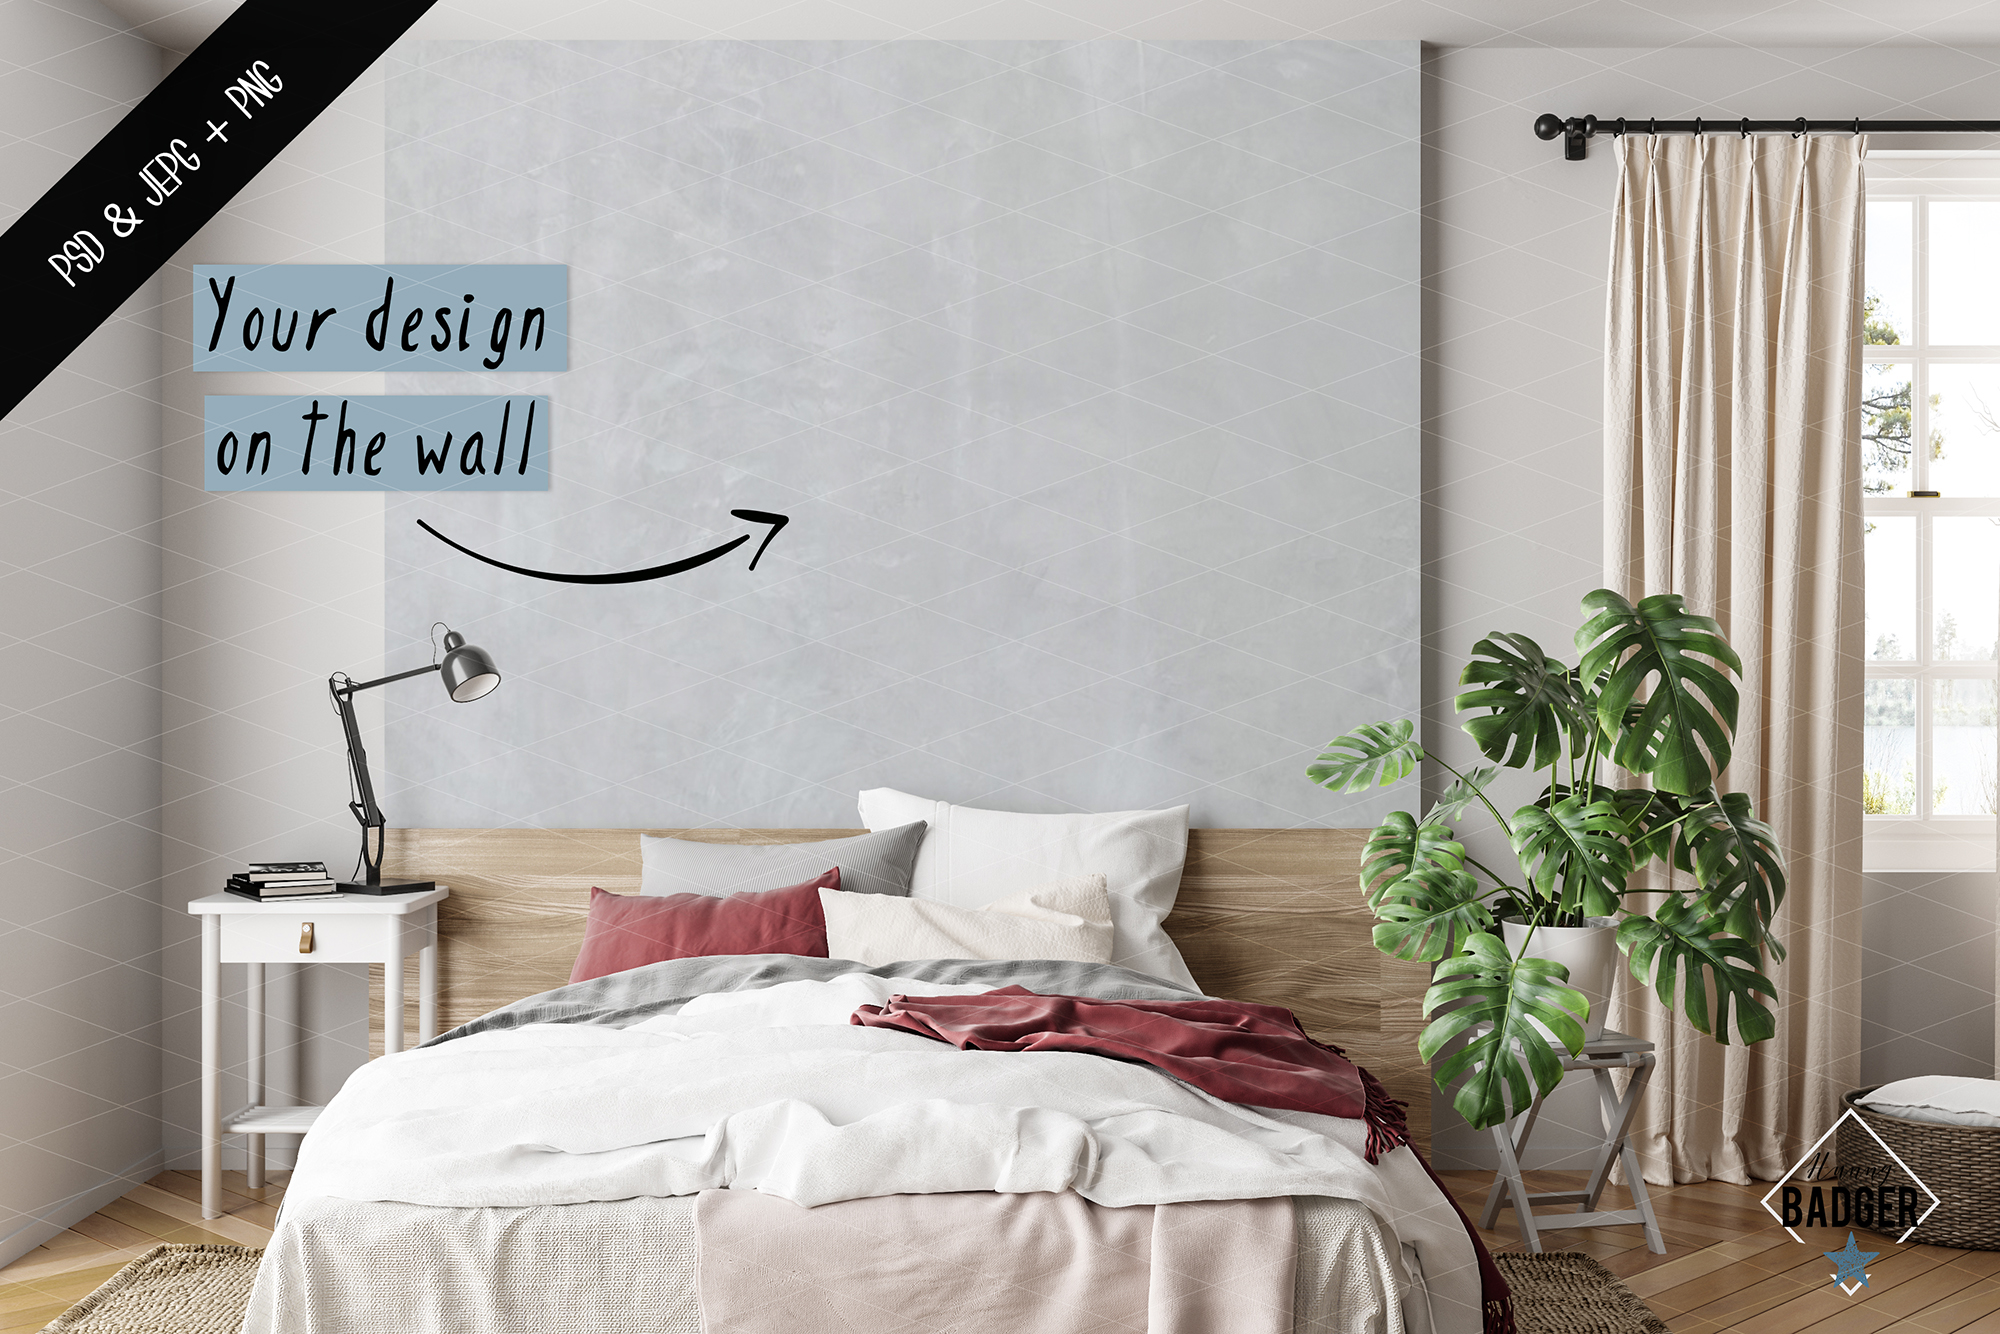 Wall mockup - Wallpaper mockup example image 4